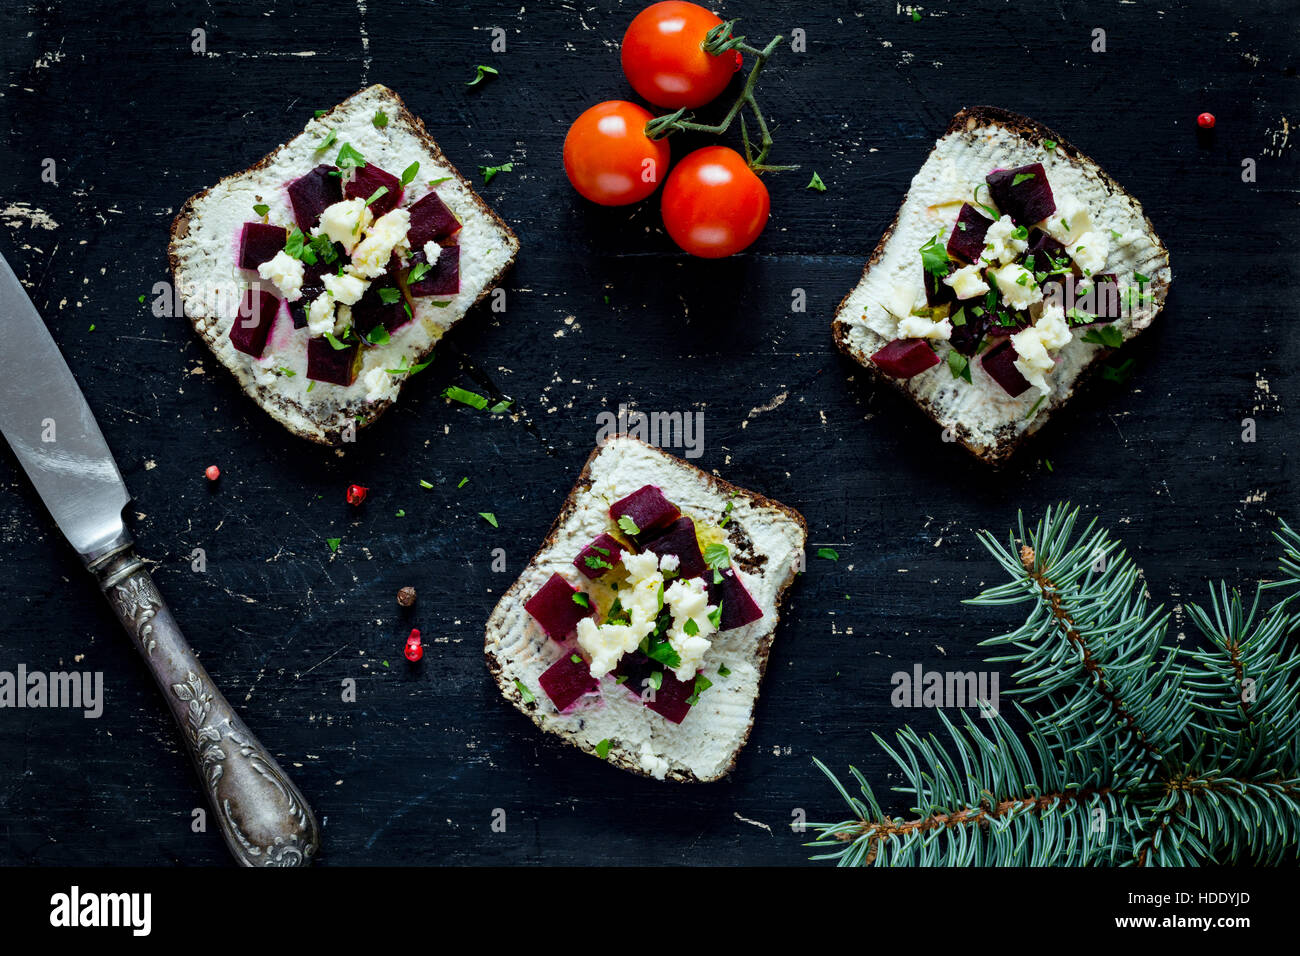 Christmas appetizers with roasted beet and goat cheese on black board. Top view, close up - Stock Image